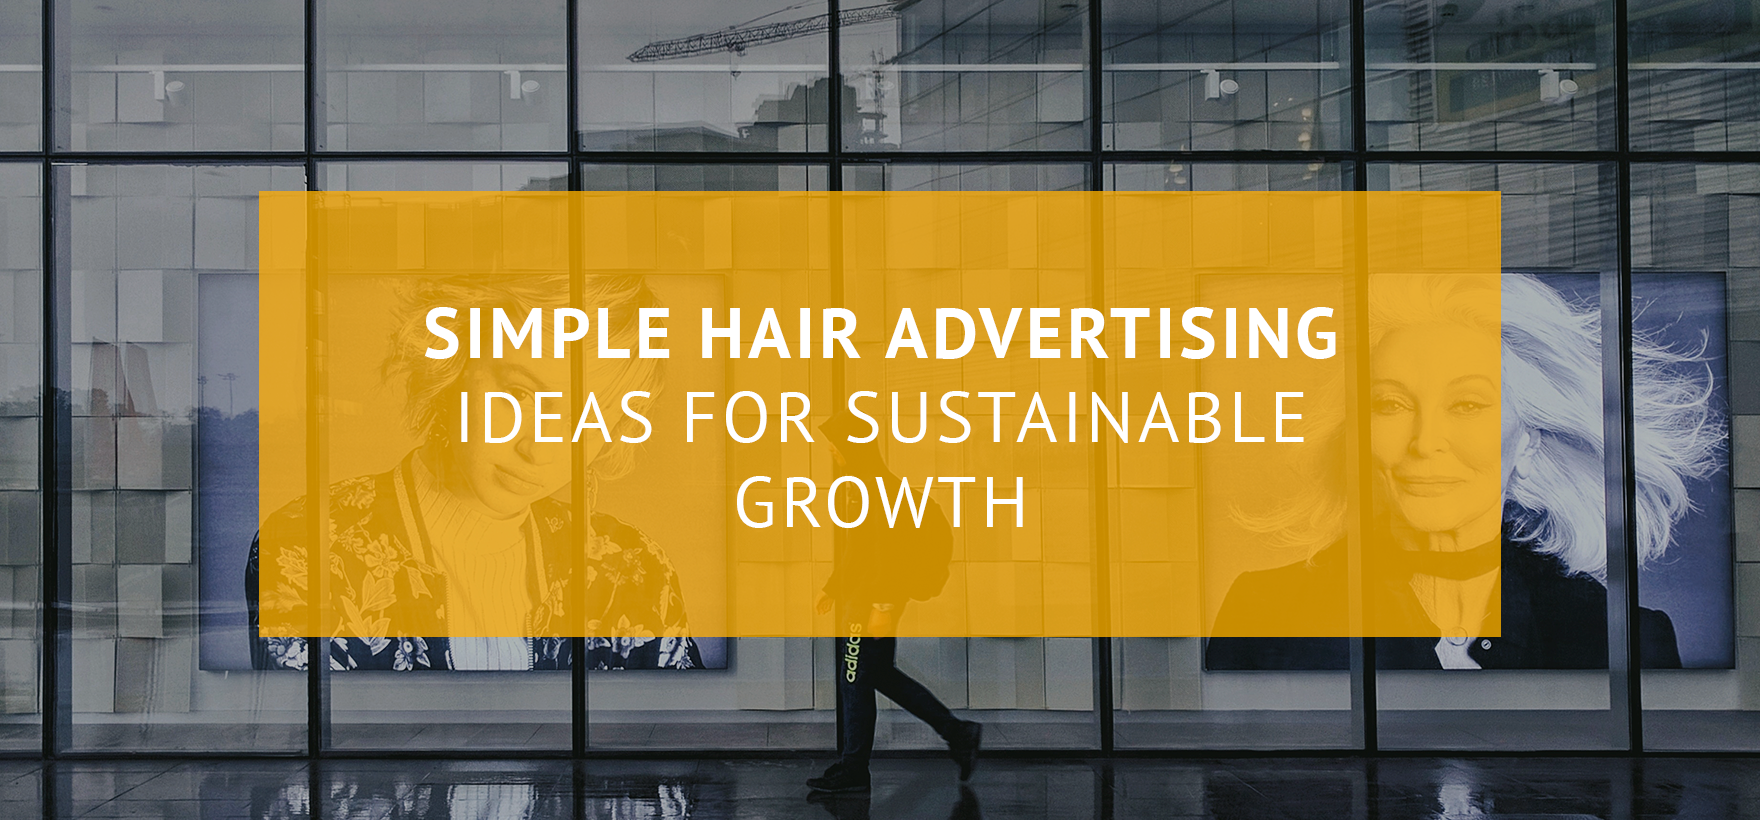 Simple Hair Salon Advertising Ideas for Sustainable Growth